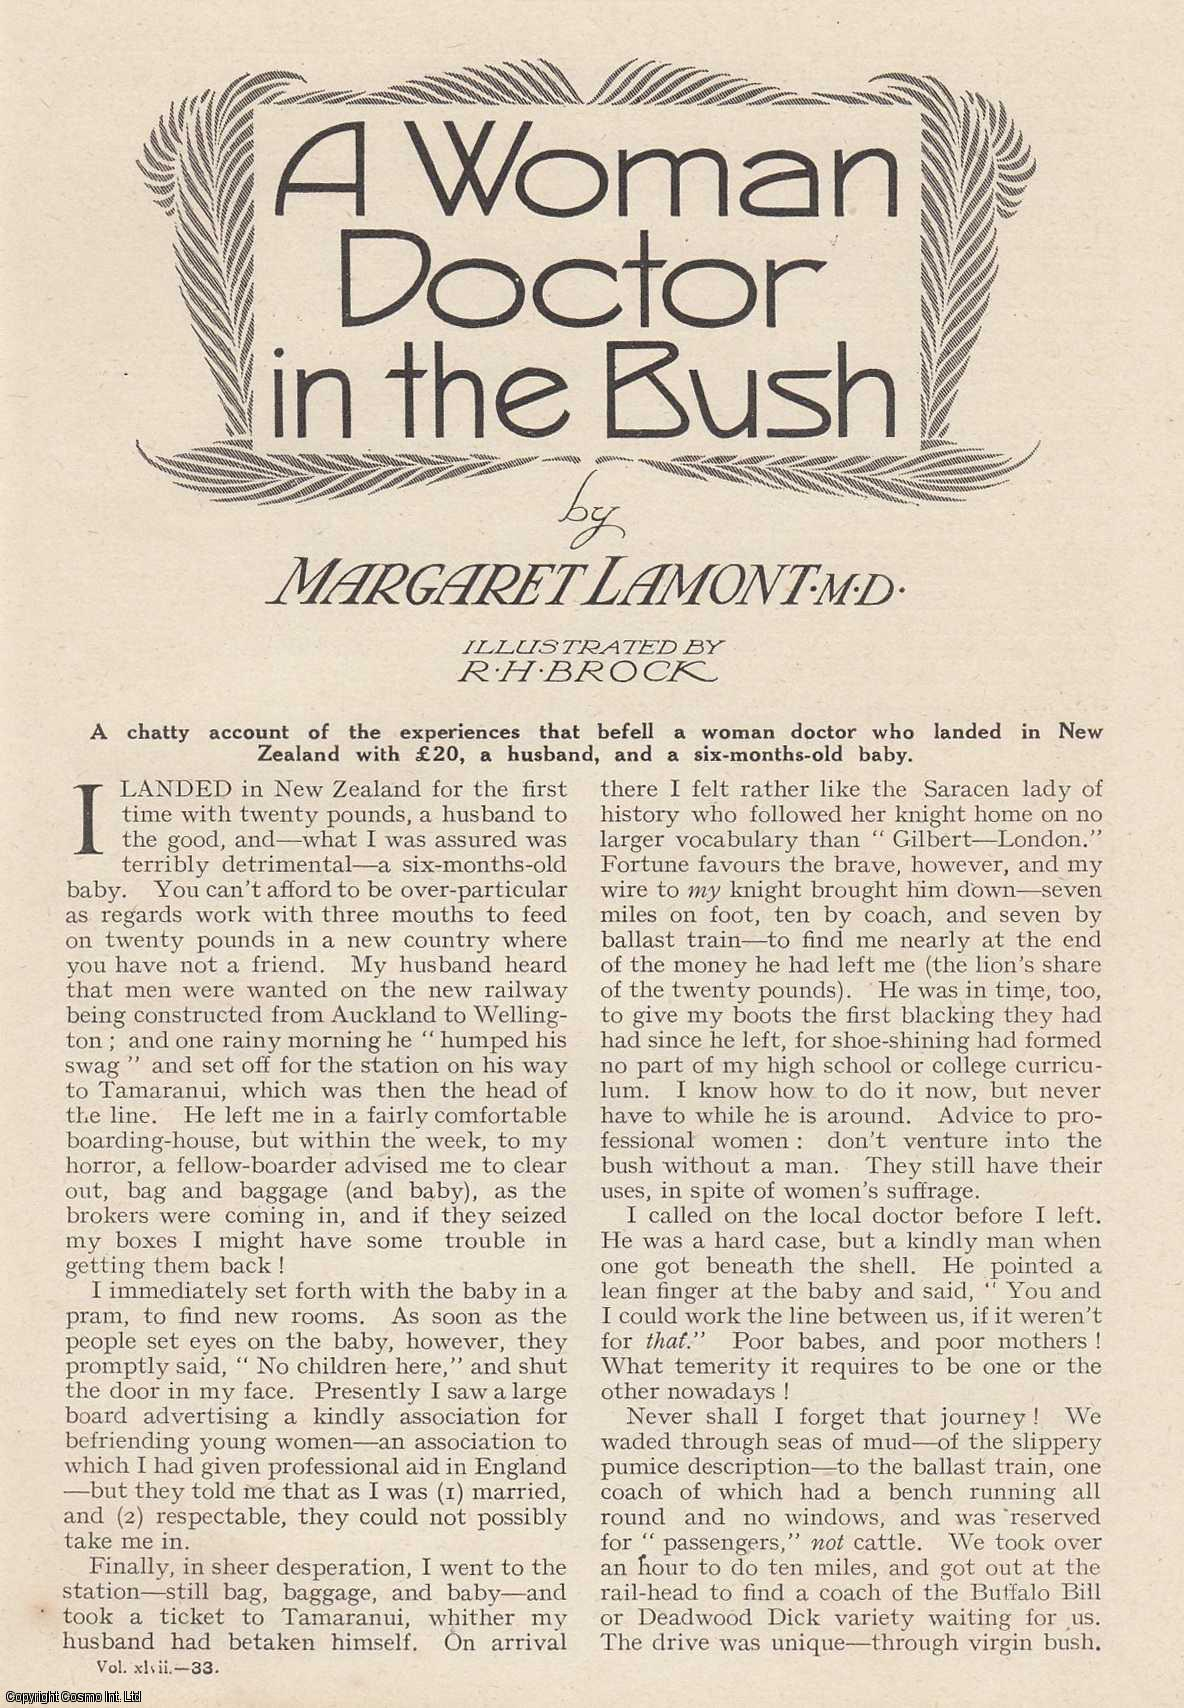 LAMONT, MARGARET - A Woman Doctor In The Bush. An original article from the Wide World Magazine, 1921.